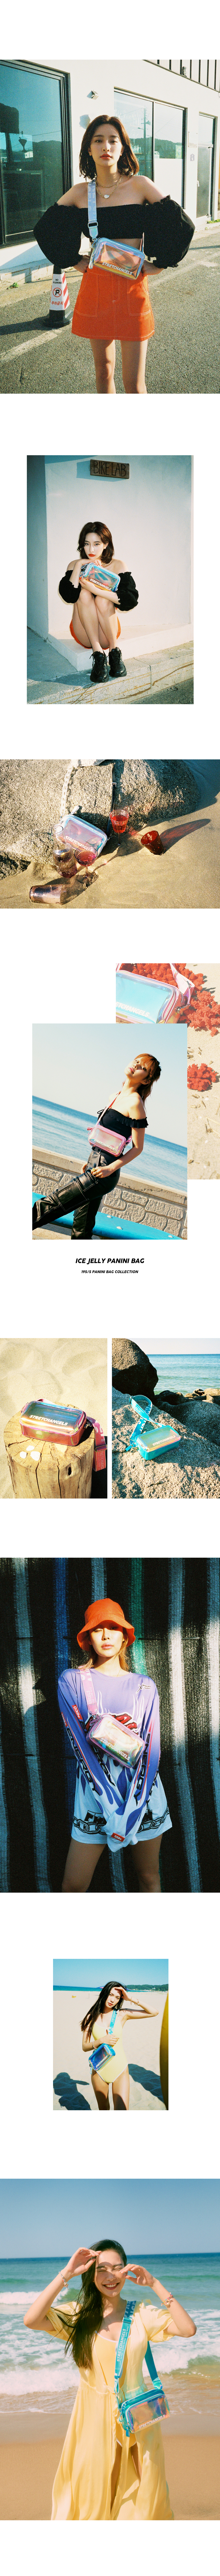 스트레치 엔젤스(STRETCH ANGELS) [파니니백]PANINI ice jelly bag (Silver)